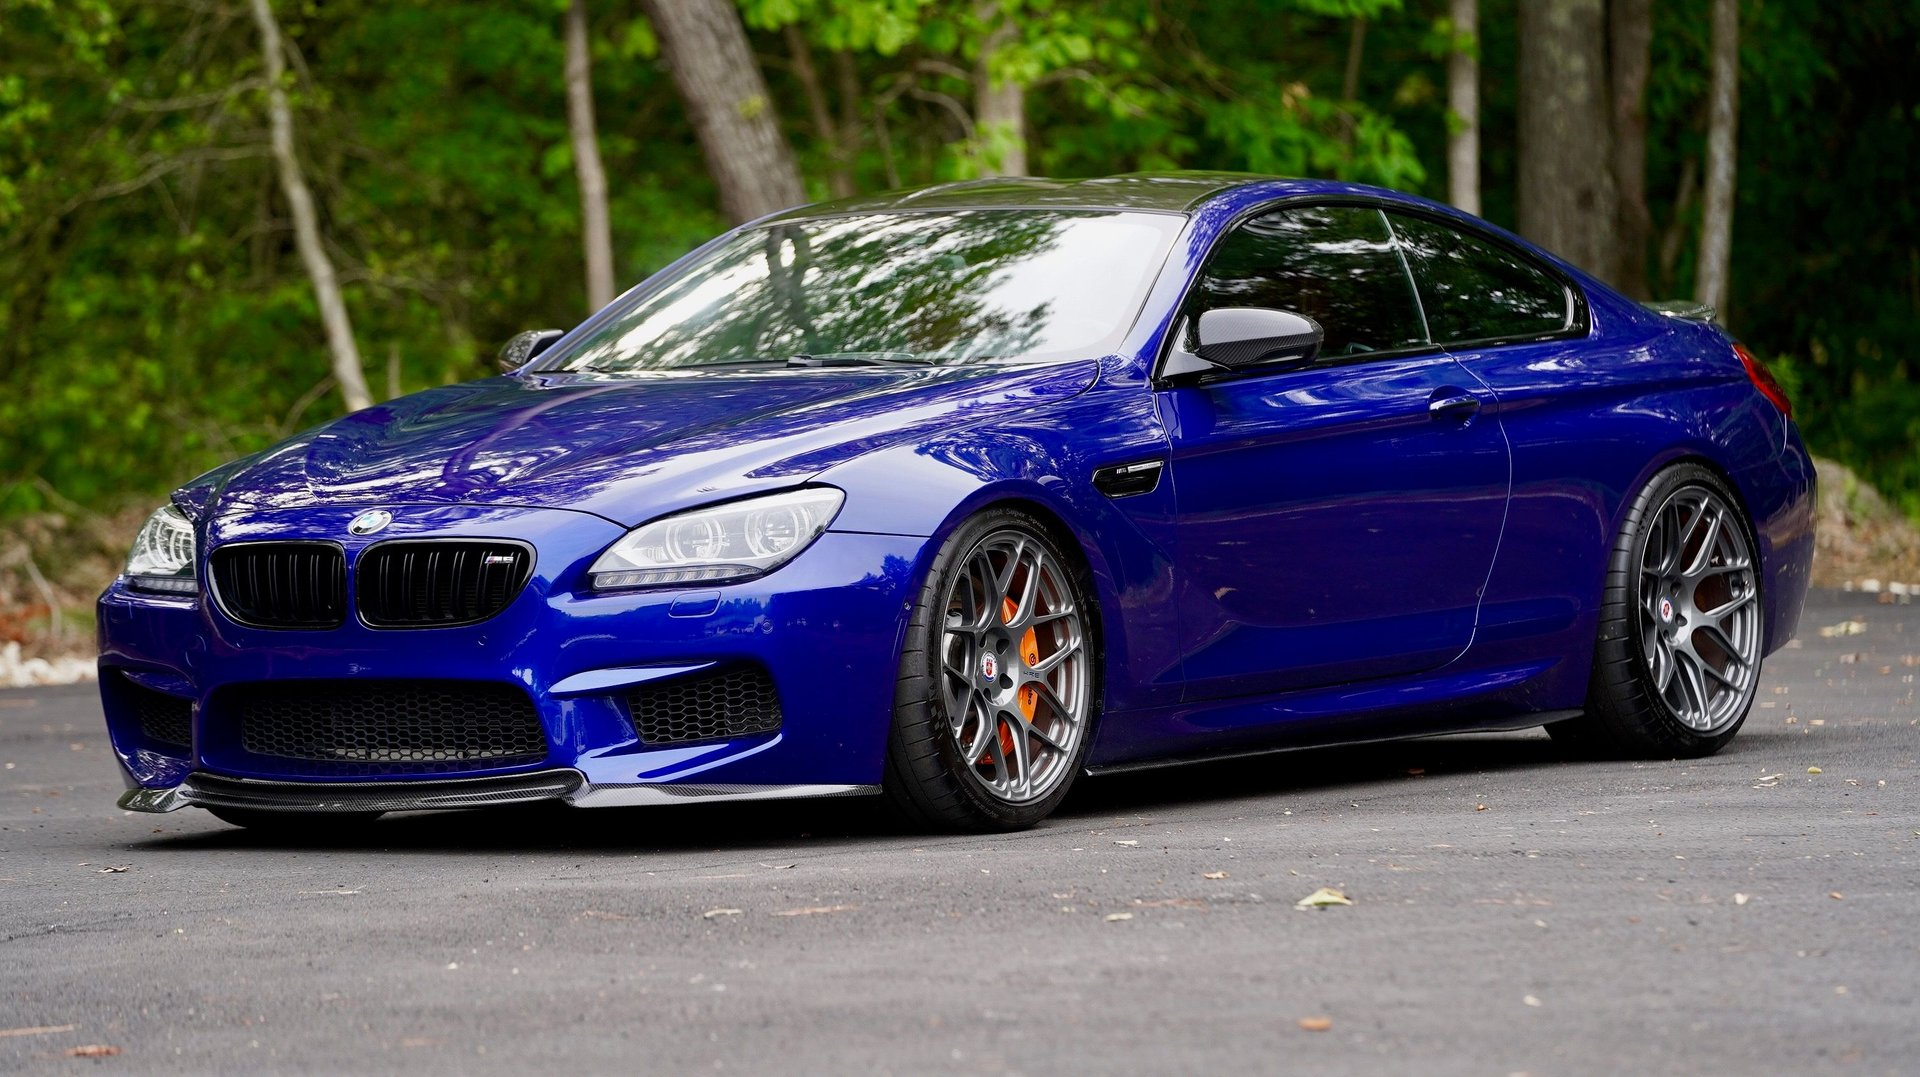 2013 bmw m6 coupe 850 hp